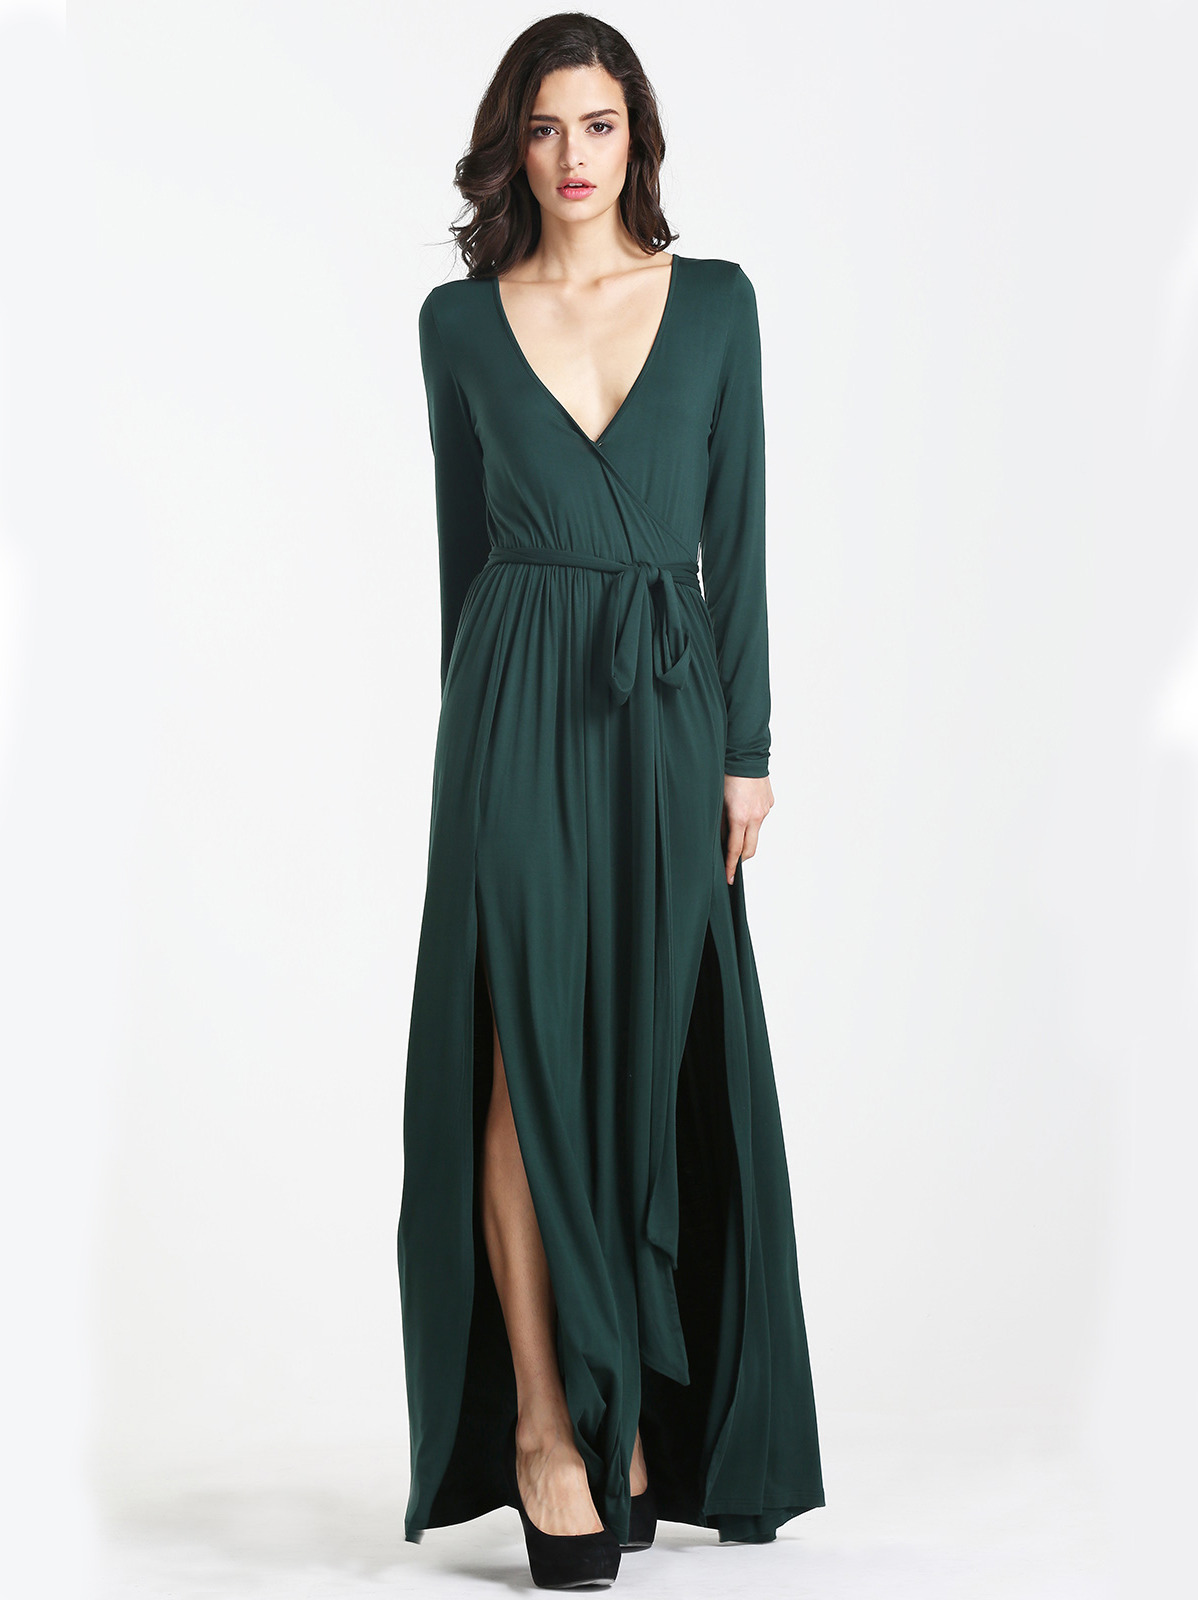 New dresses alert! Yep, we've got you covered for all your special events with maxi dresses from our newest collection. Want to upgrade your wardrobe? Just click to shop.